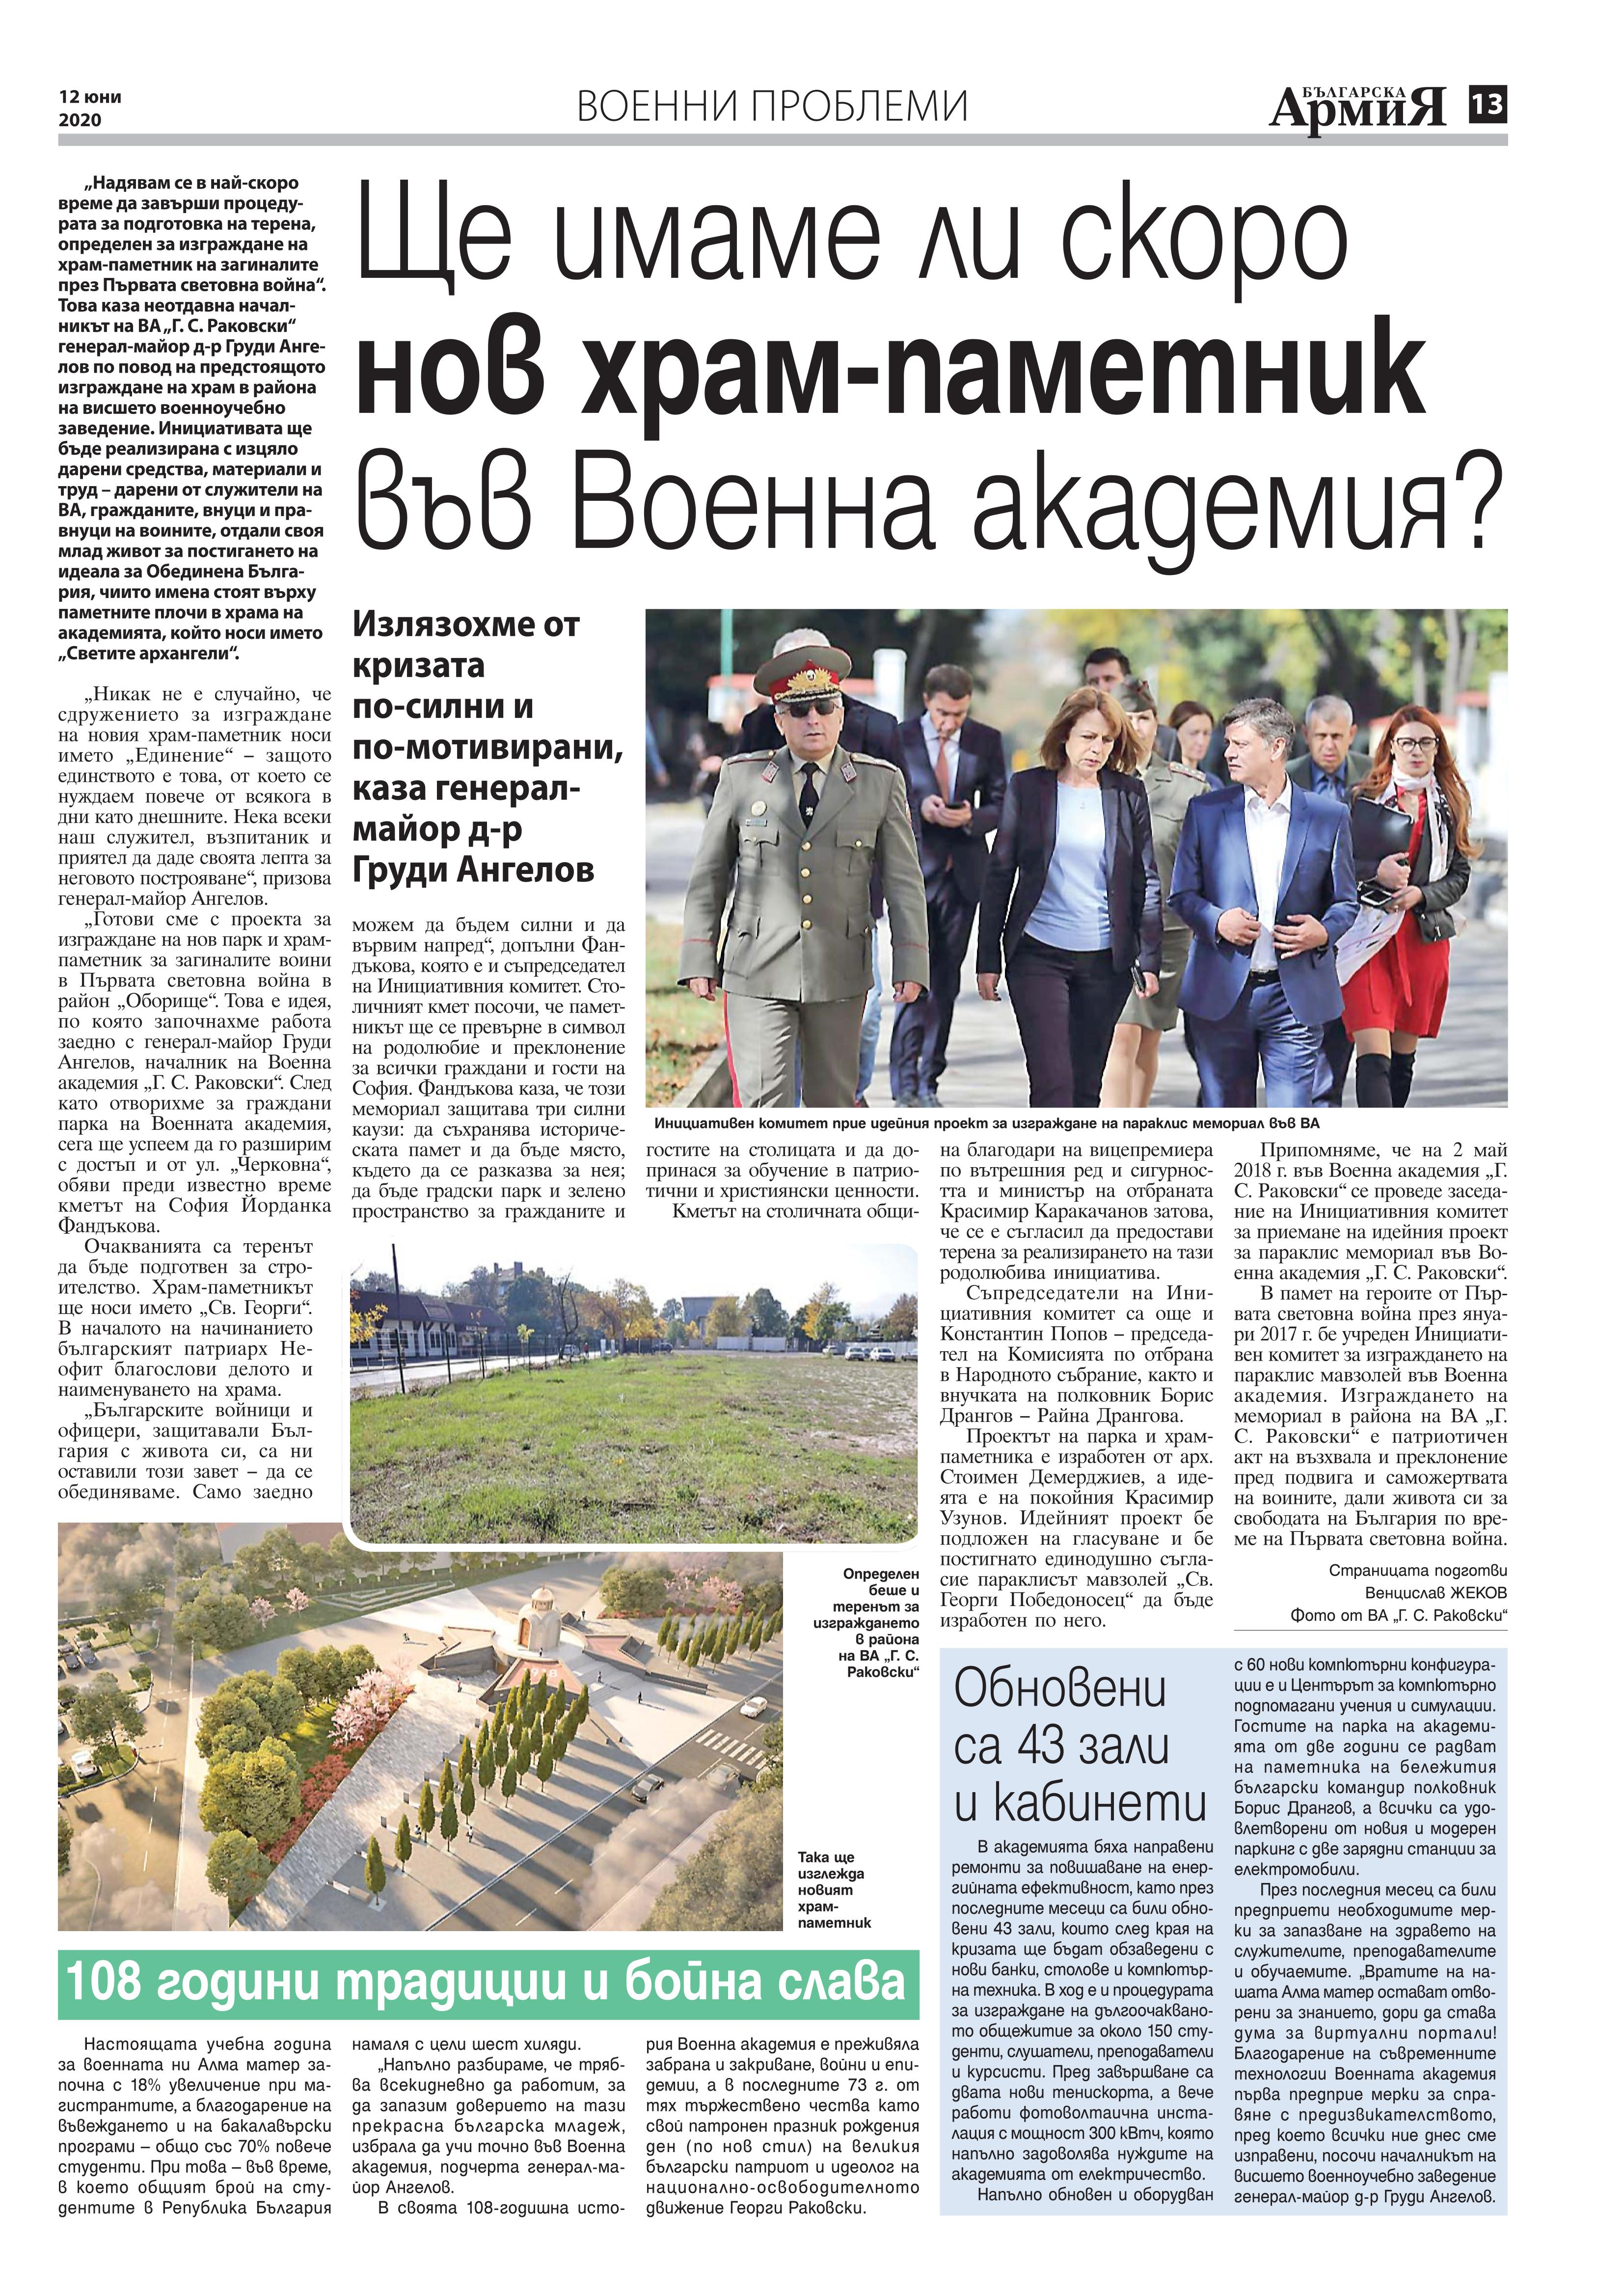 https://www.armymedia.bg/wp-content/uploads/2015/06/13.page1_-143.jpg